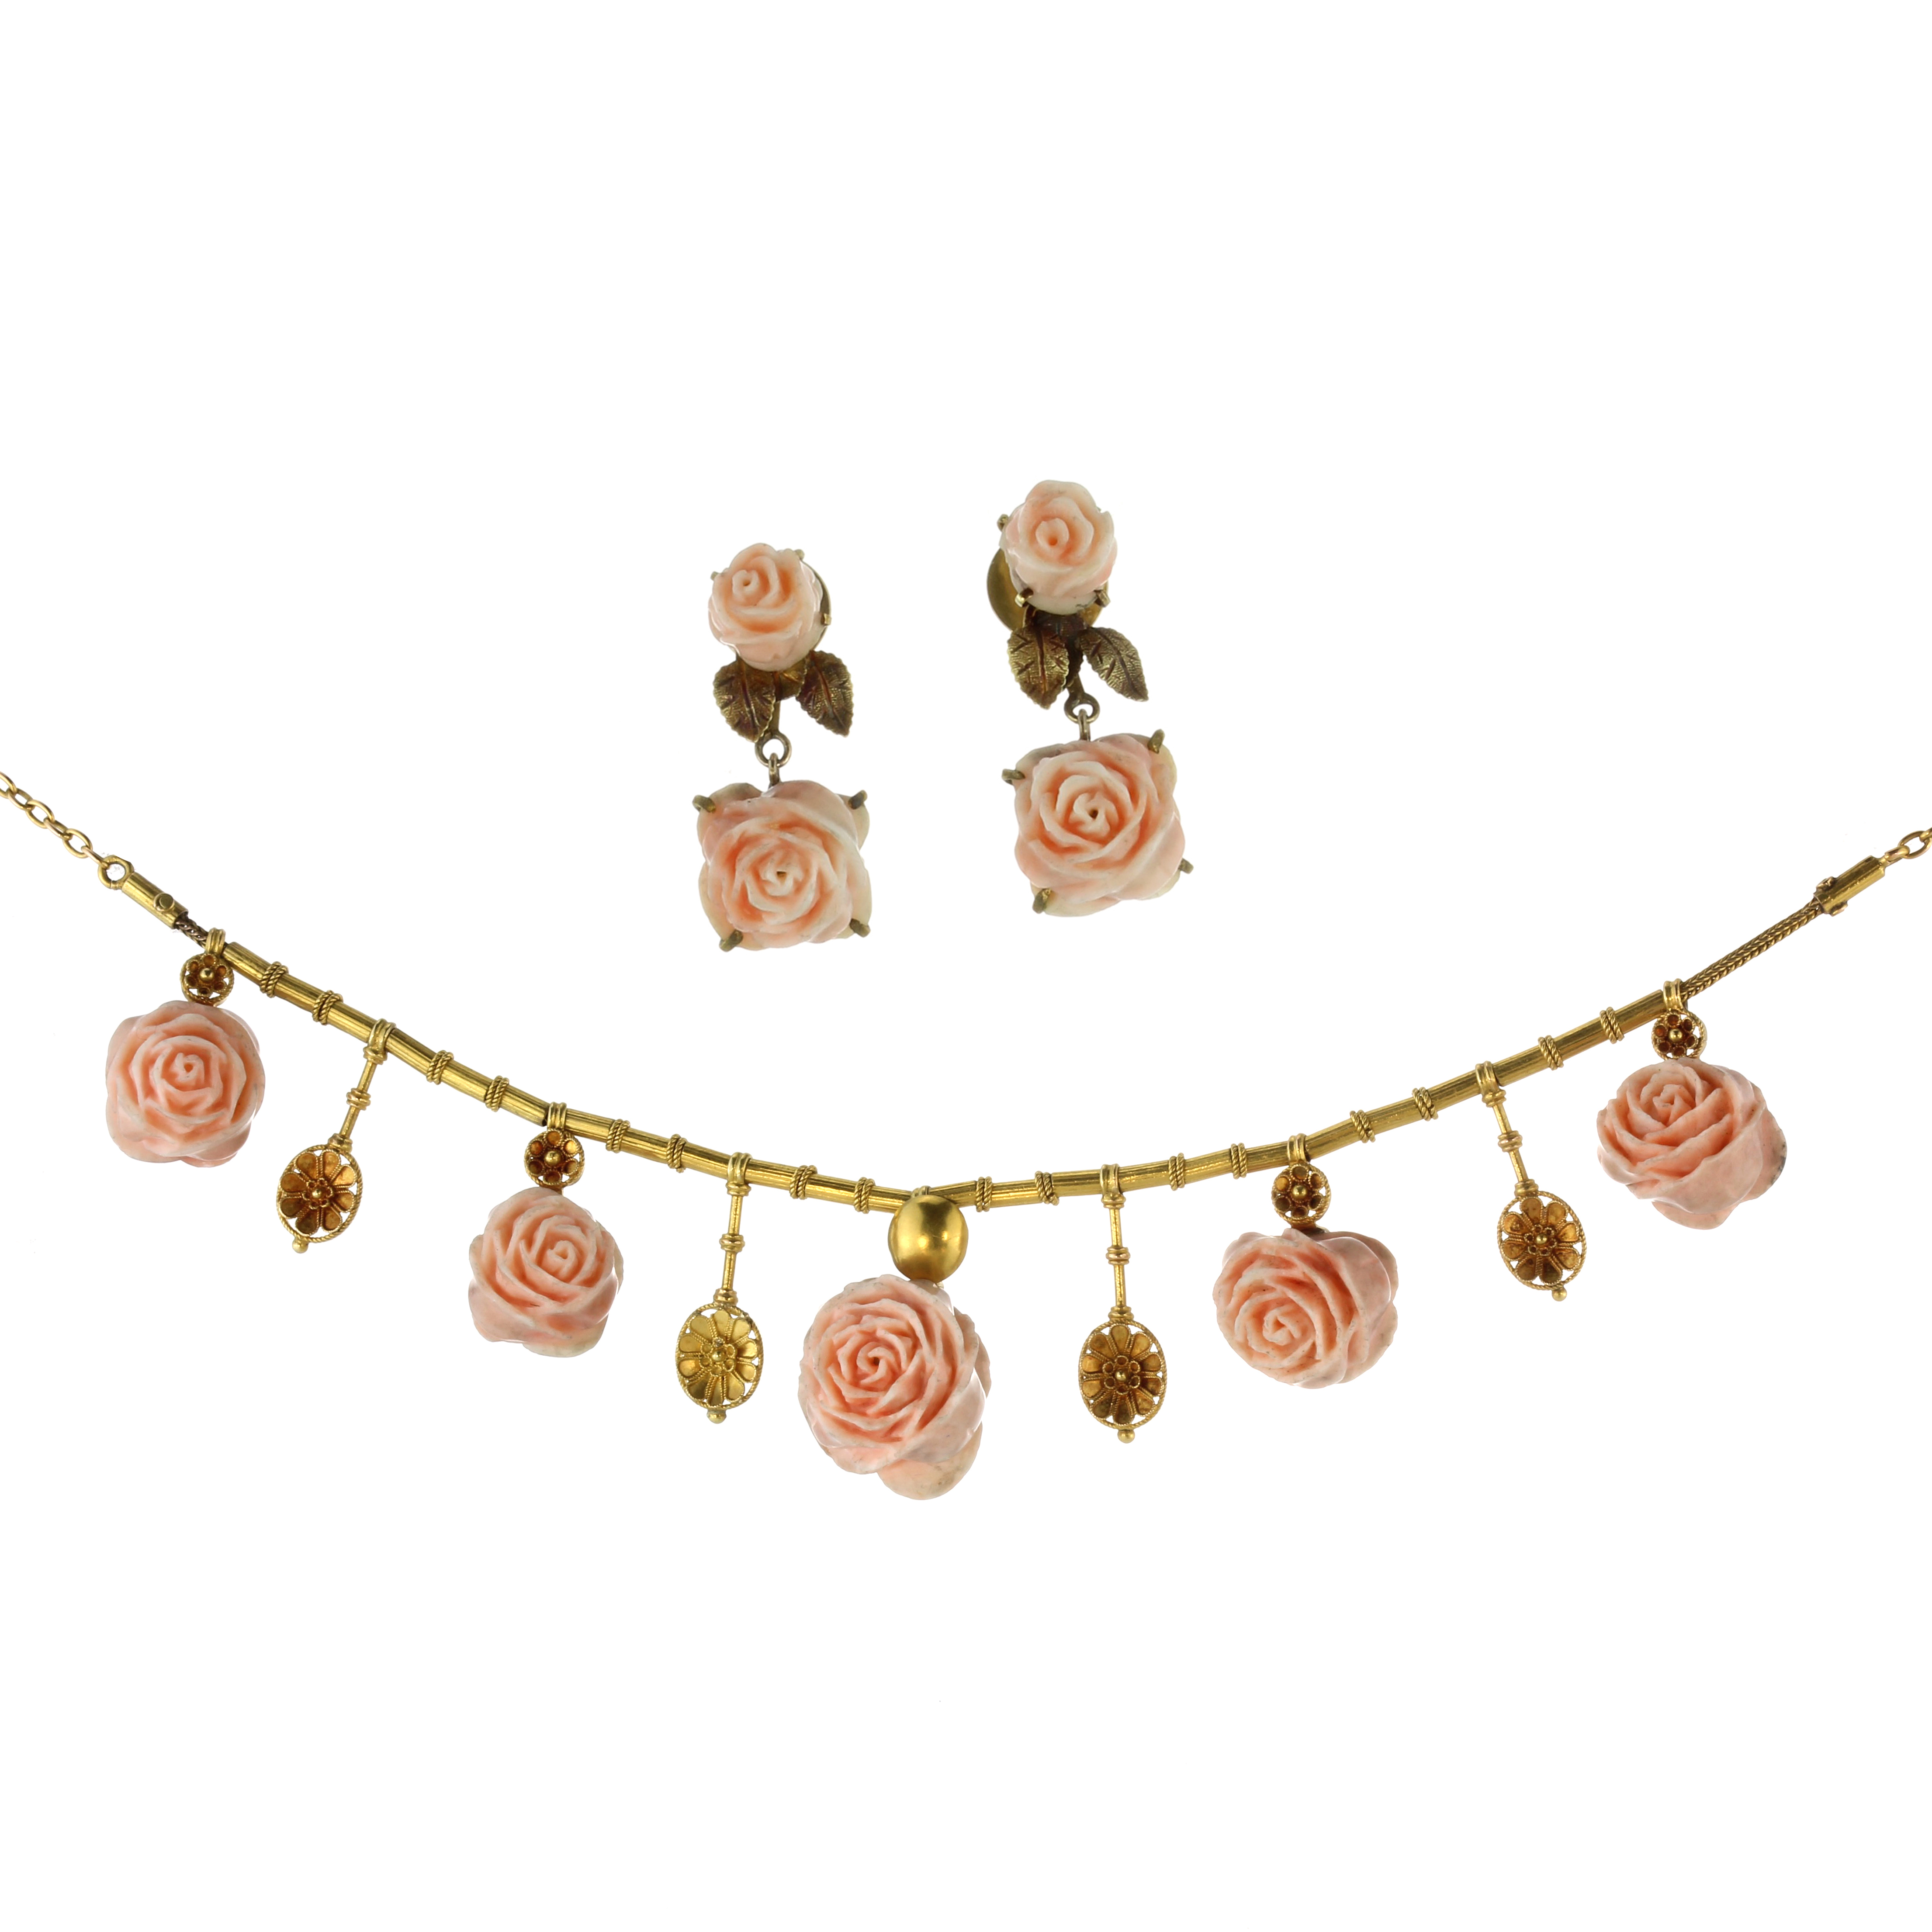 Los 1 - An antique coral rose necklace and earrings suite the necklace set with five graduated carved